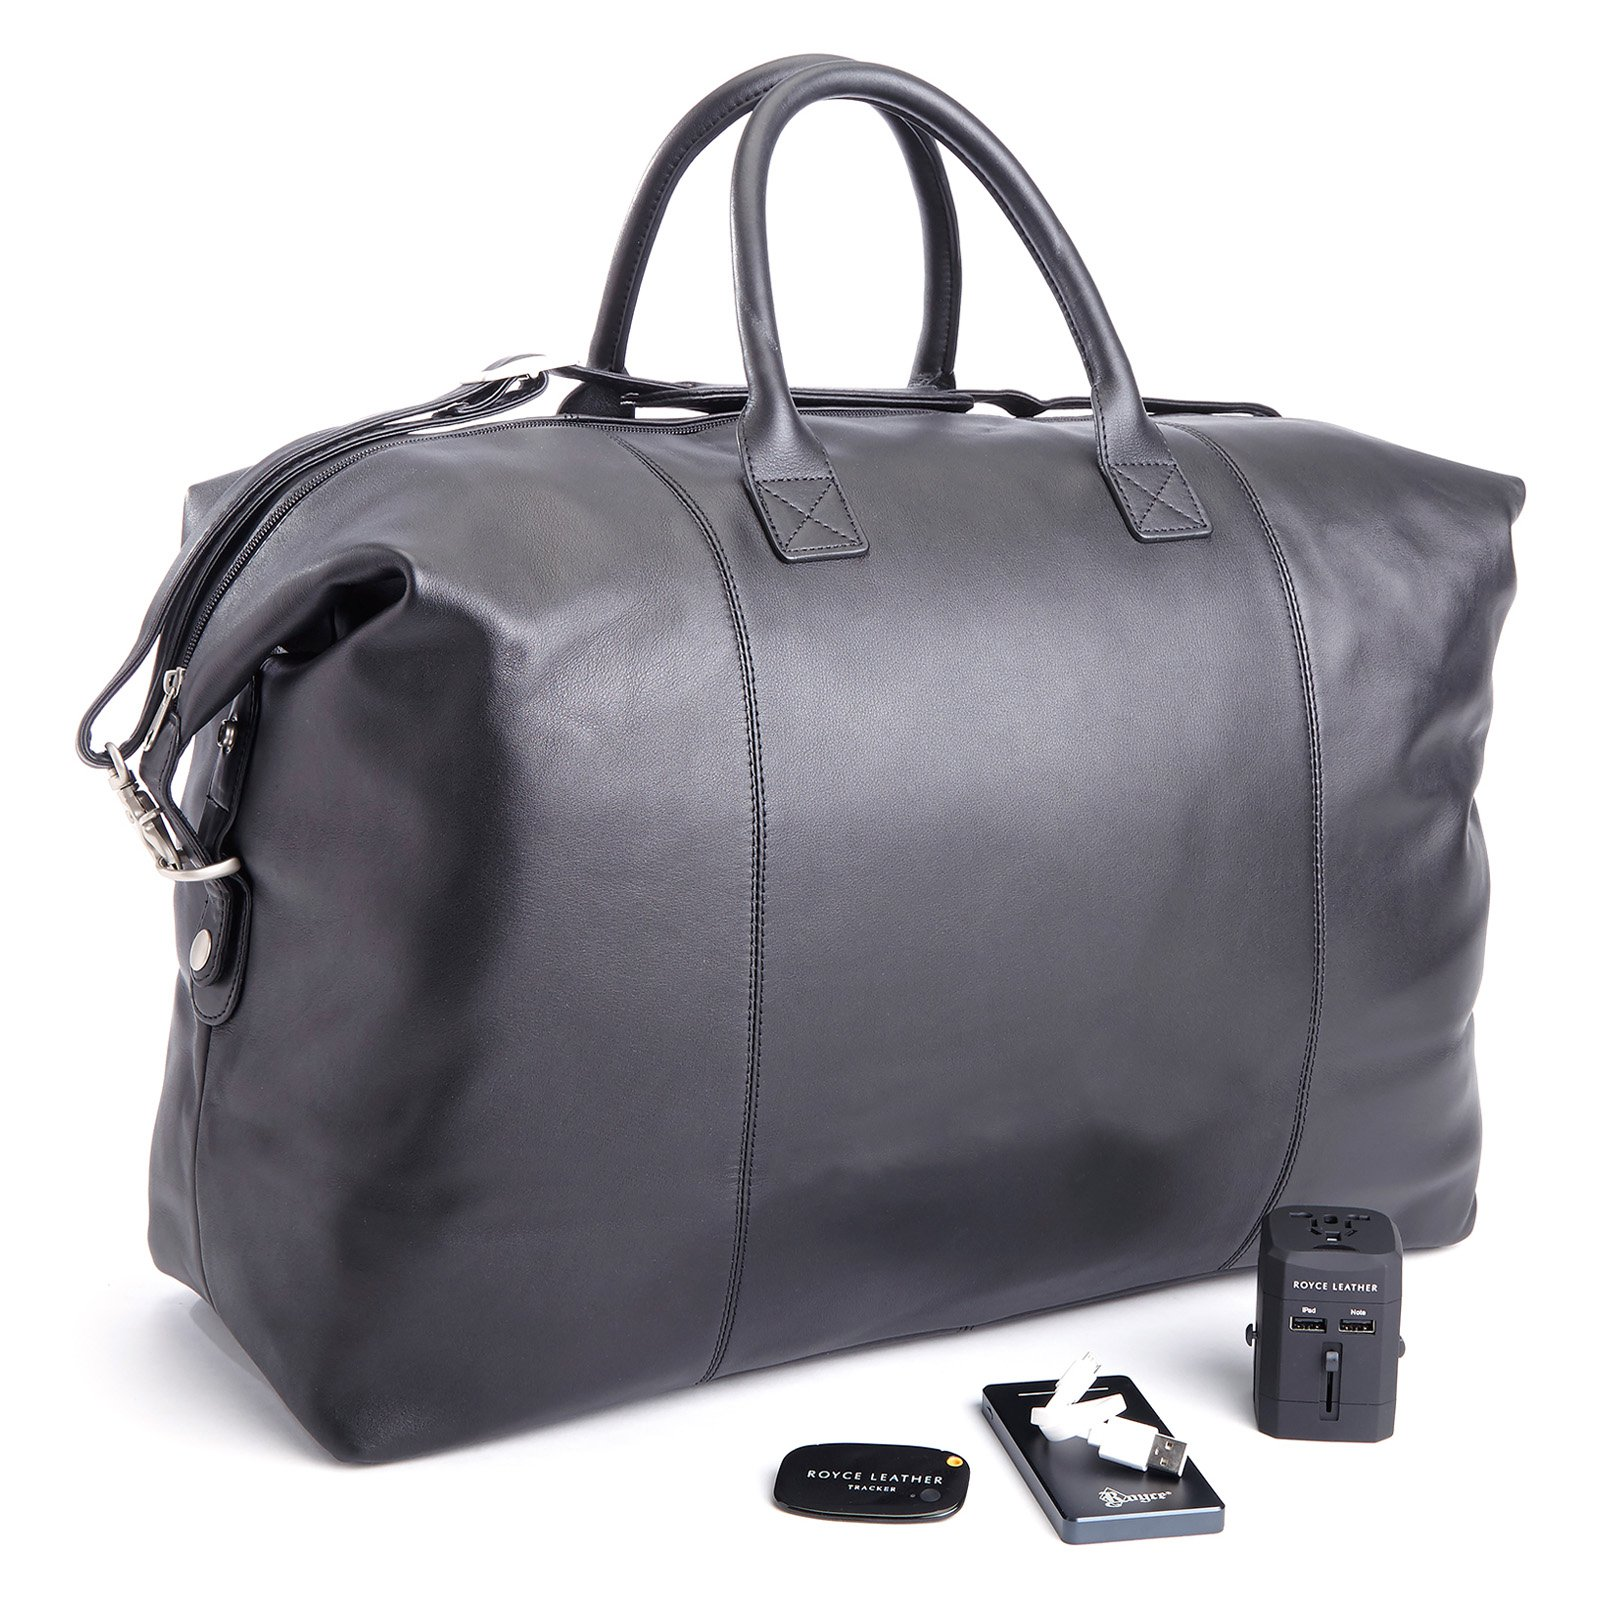 Royce Luxury Expandable Duffel Bag Bluetooth-Based Tracking Device by Emporium Leather Co